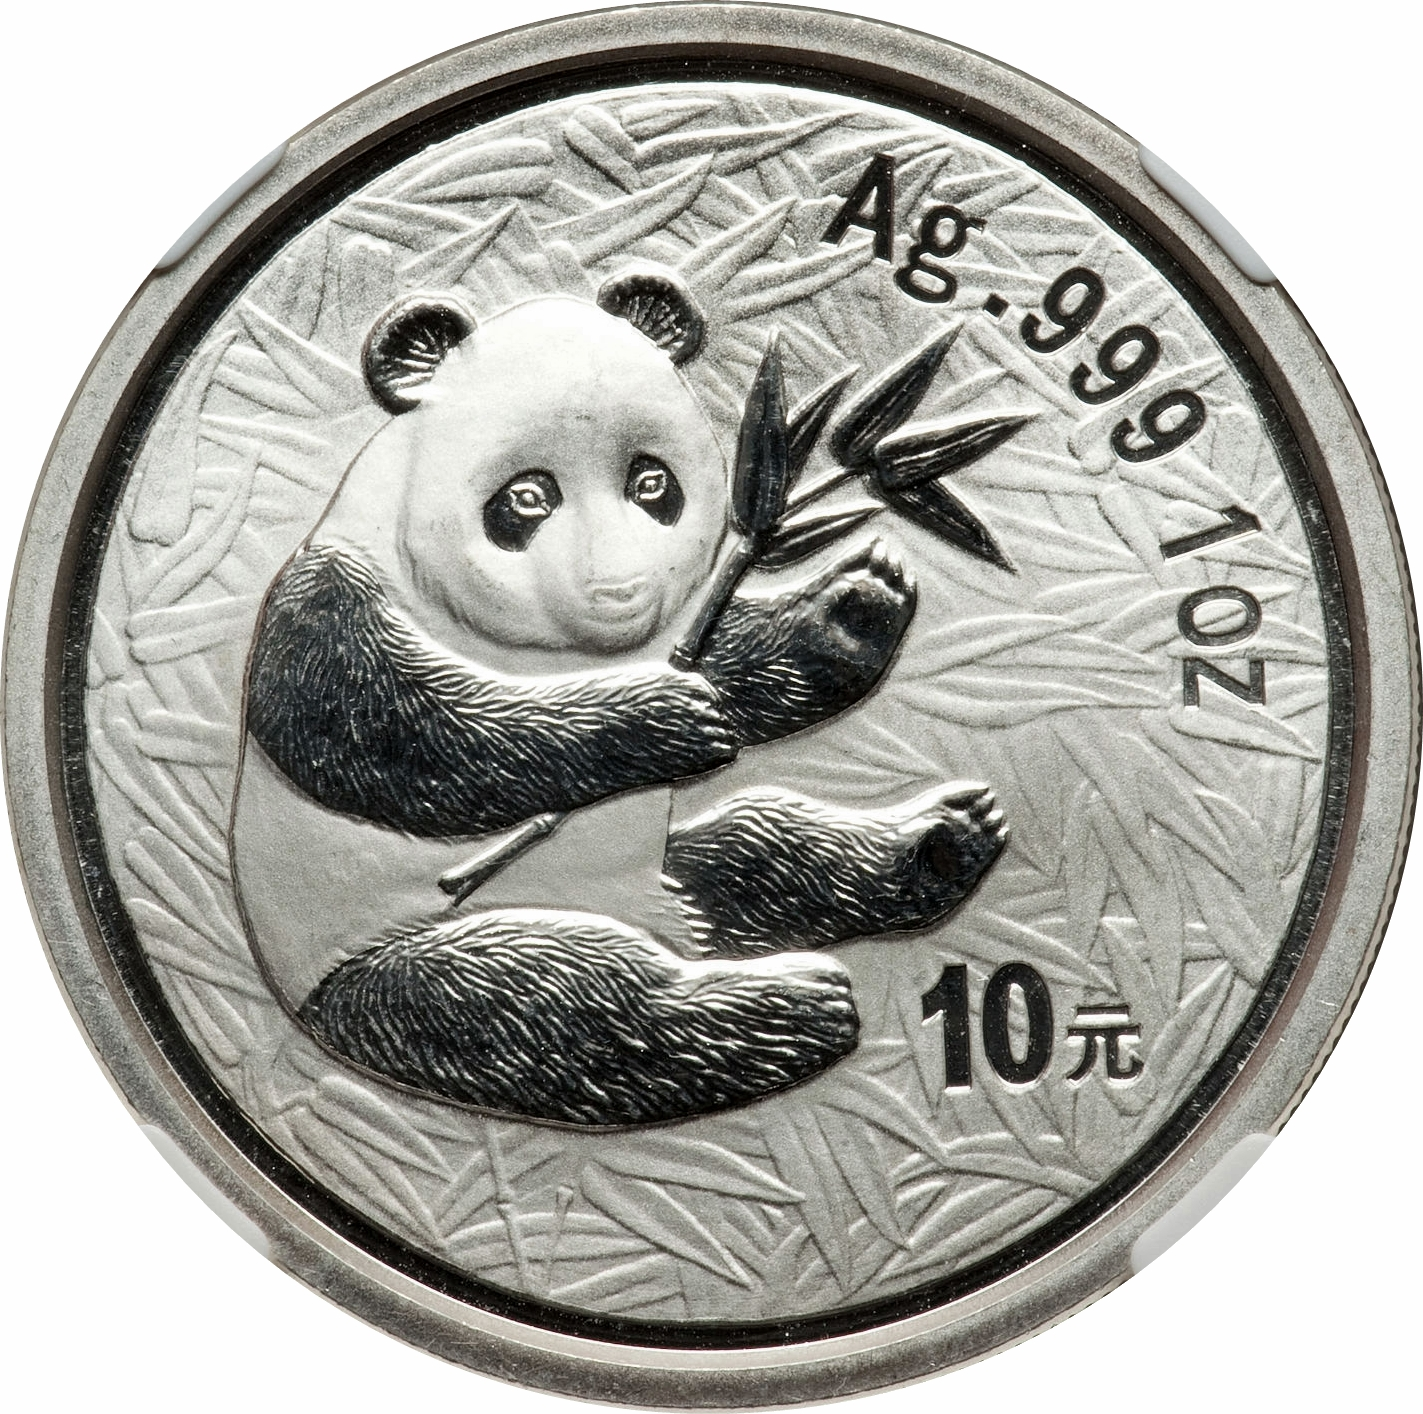 2000 Chinese Panda 1 oz Silver Coin Original Double Sealed in Capsule